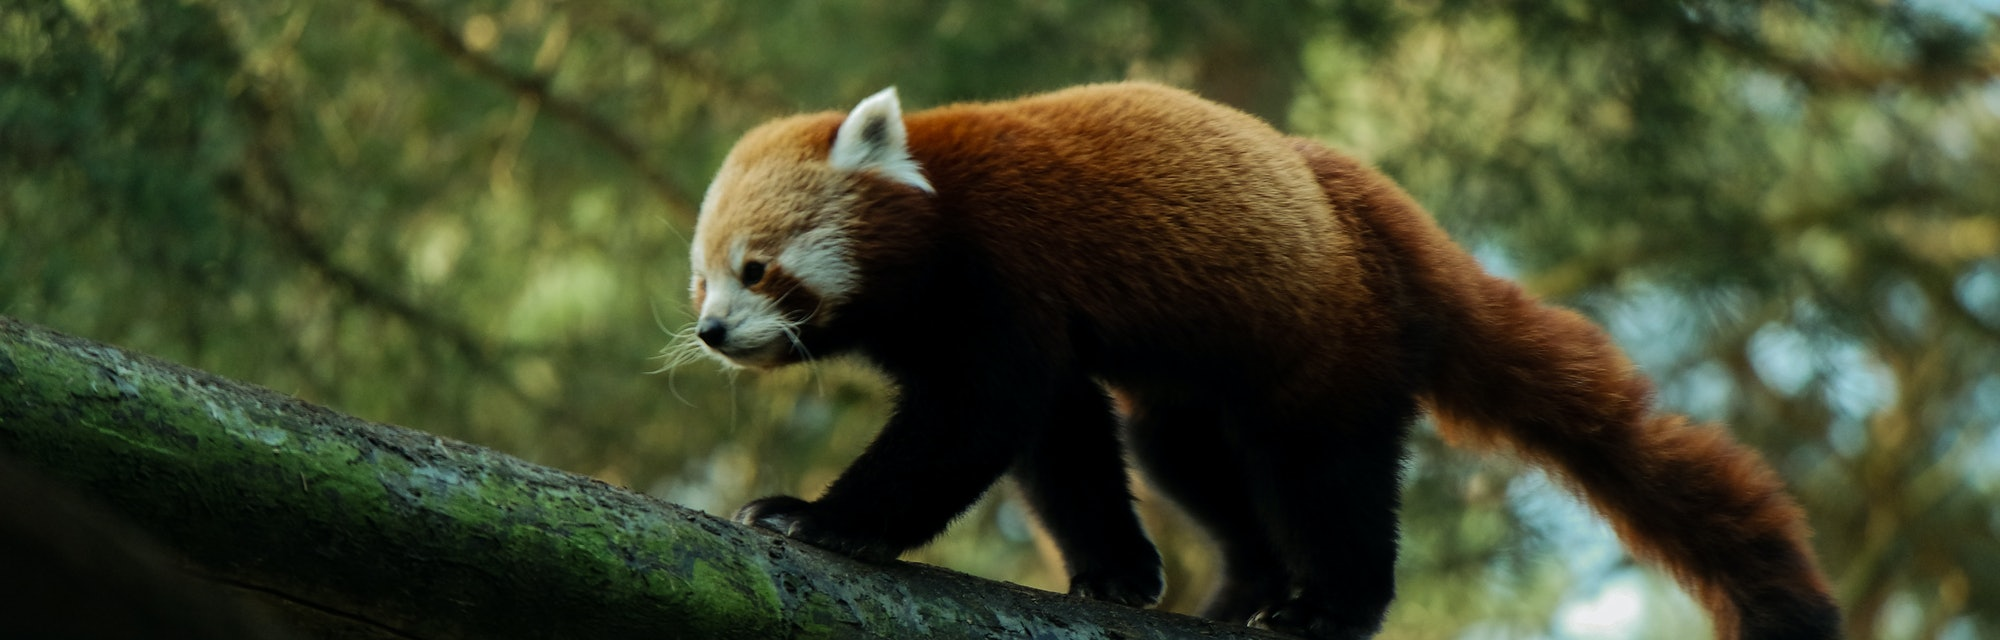 Red panda in the forest